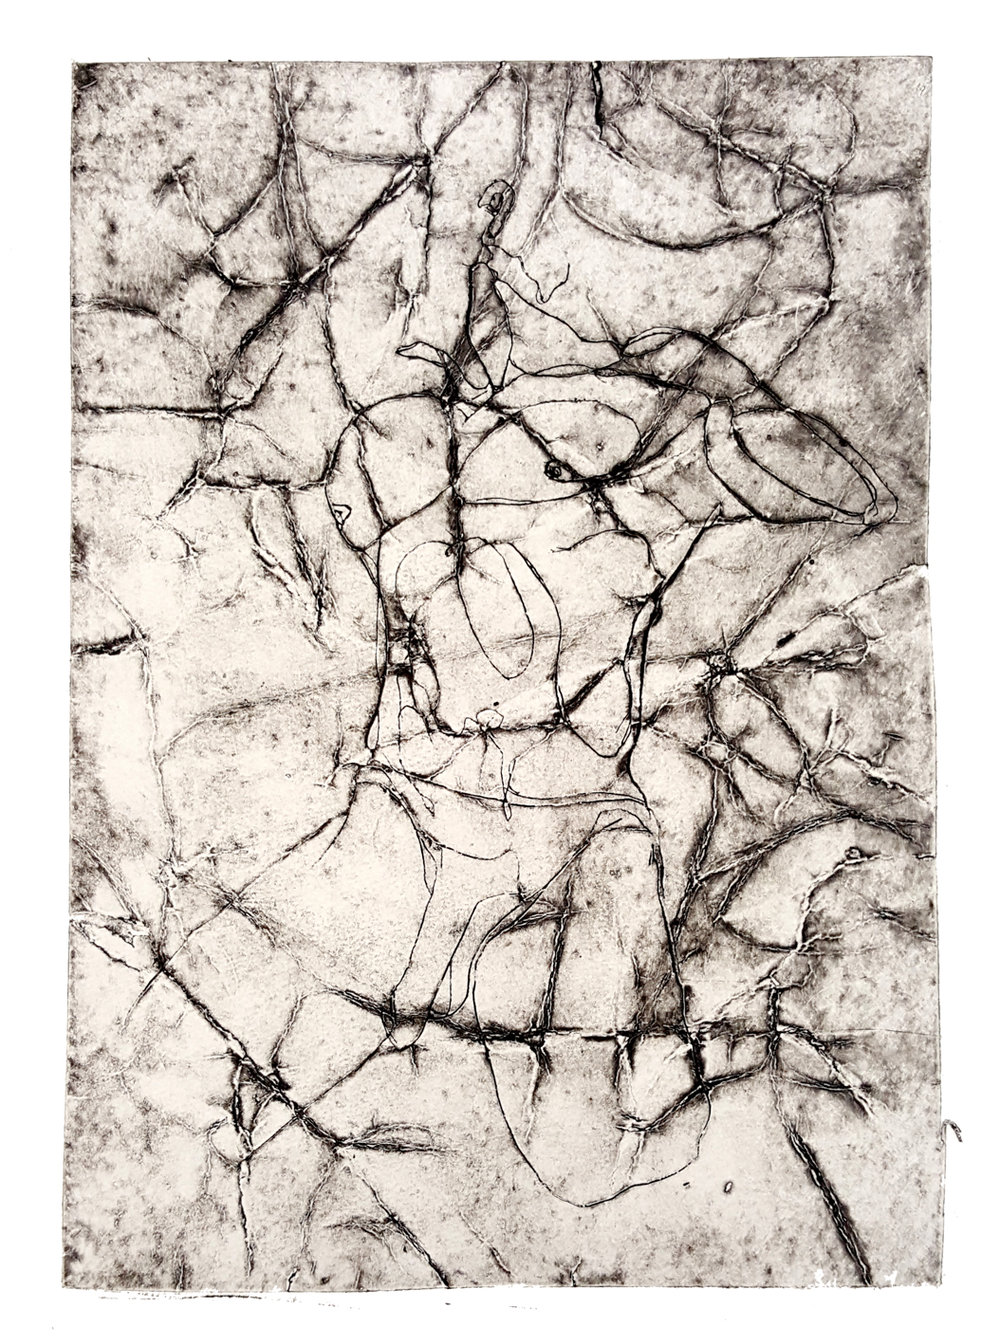 'Untitled', 2016, wax-plate etching on paper